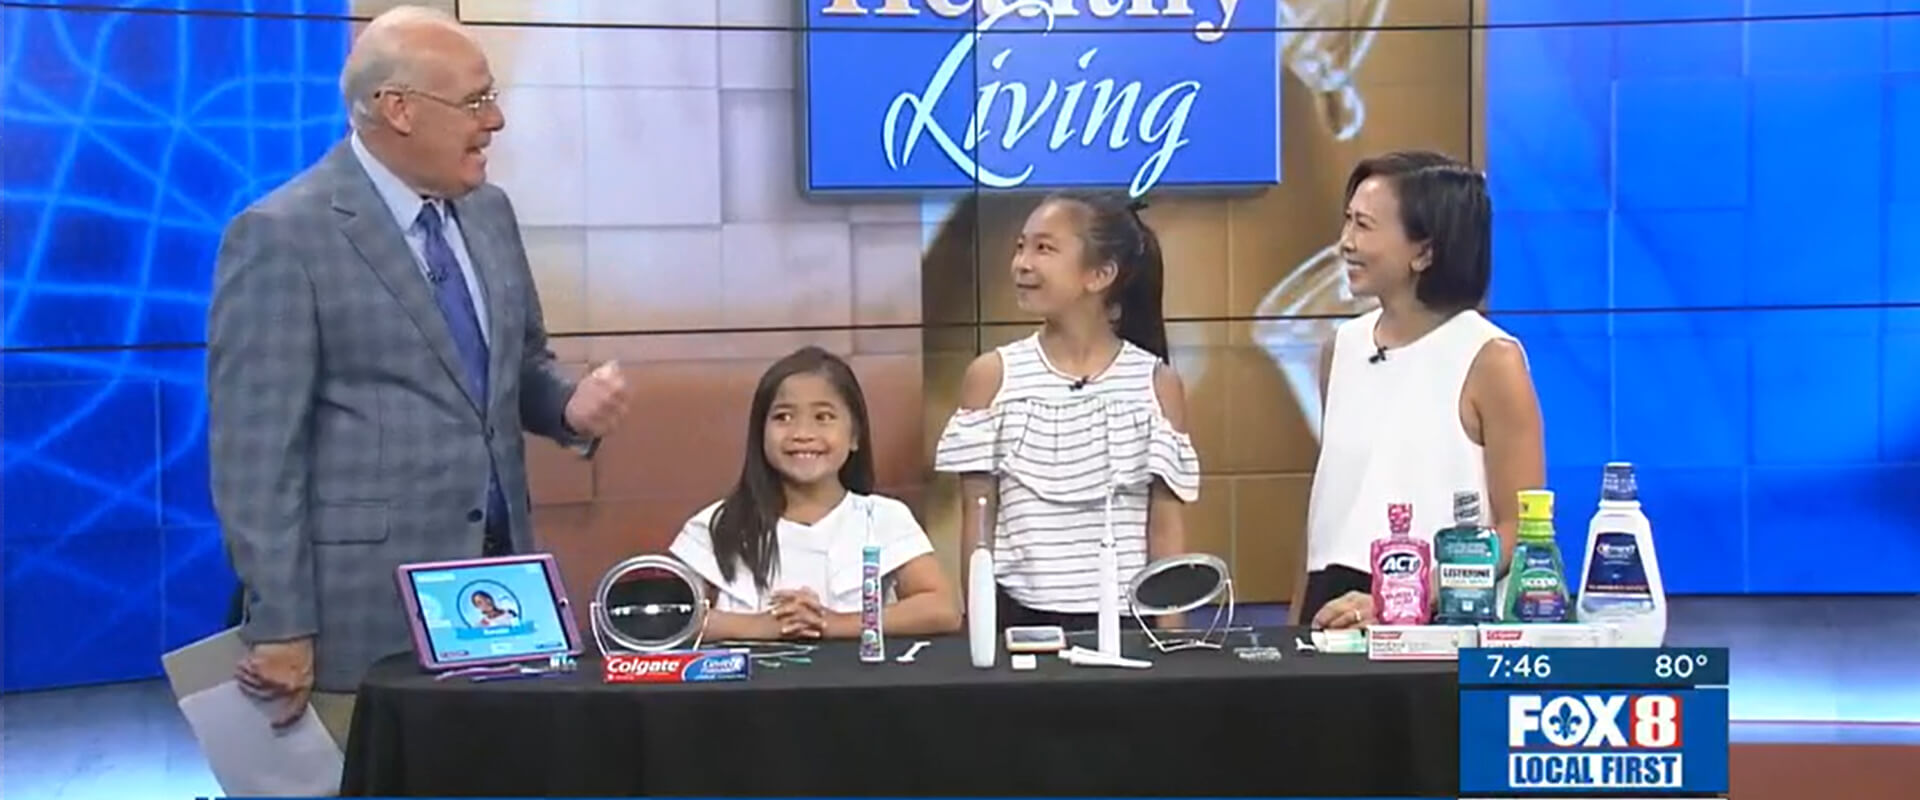 Dr. Diem Do and kids presenting in news